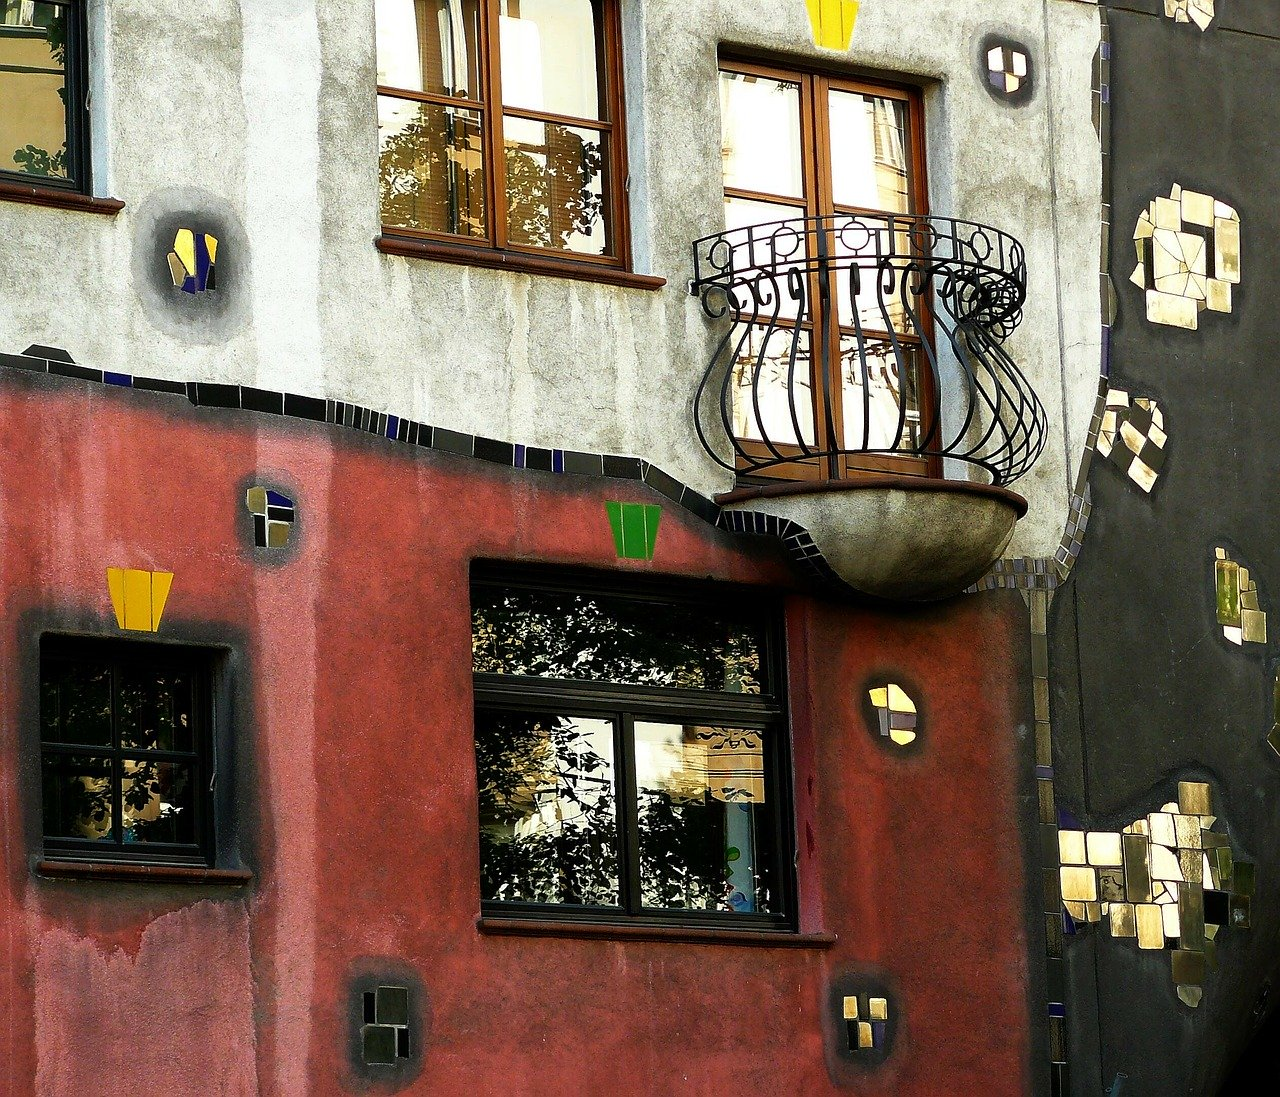 The Colorful Hundertwasserhaus is one of the best things to do in Vienna in March. Discover the other great things to do in Vienna in March here. Read the article now